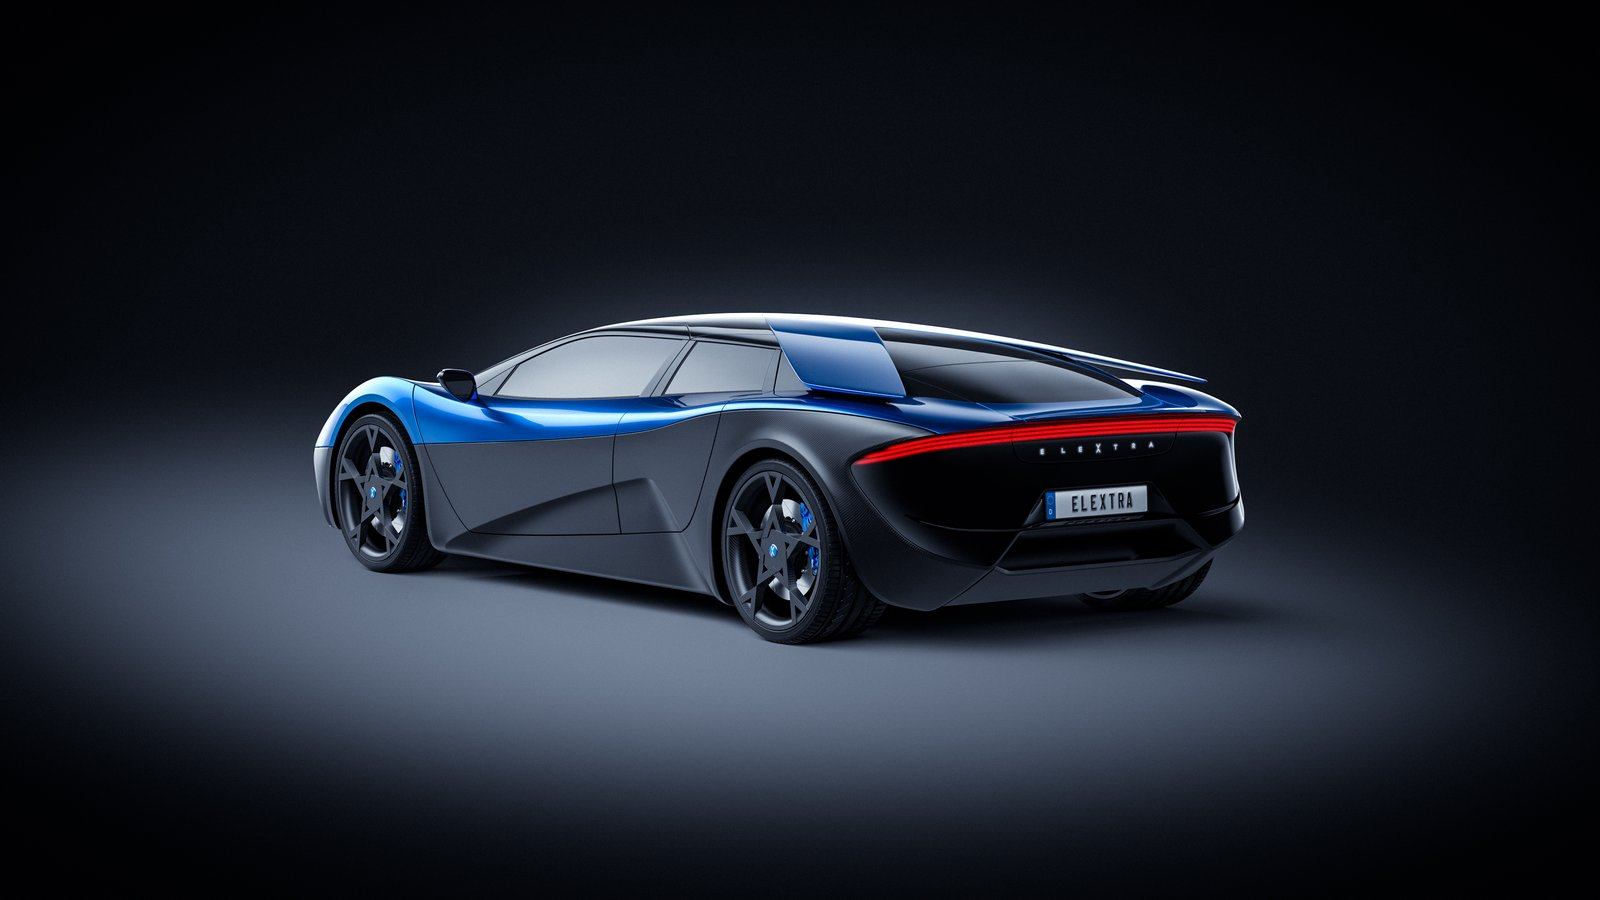 Elextra S Electric Supercar Slated To Launch In 2019 With